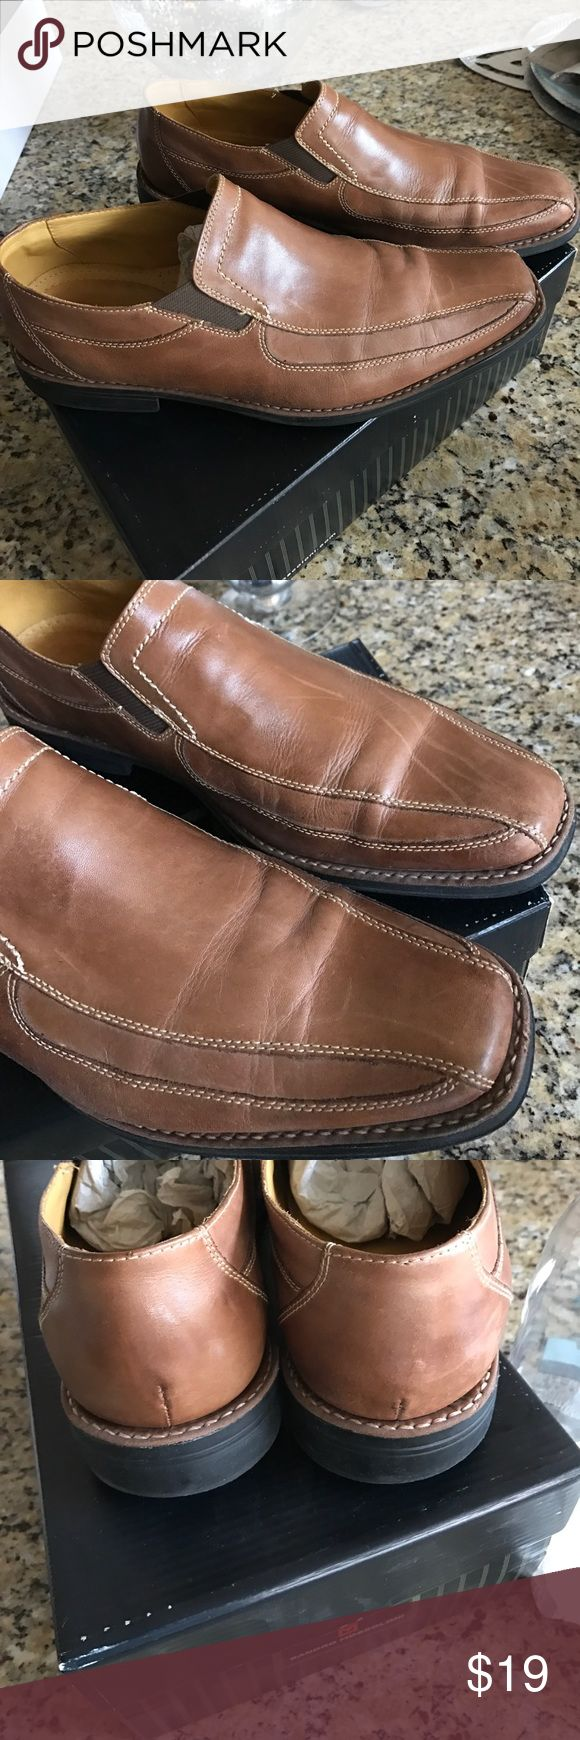 Slip on casual leather rubber sole shoes Super soft leather uppers and rubber sole , camel brown neutral color. Scuffs on front on left shoe . Tons of life left in these Sandro Moscoloni  Shoes Loafers & Slip-Ons